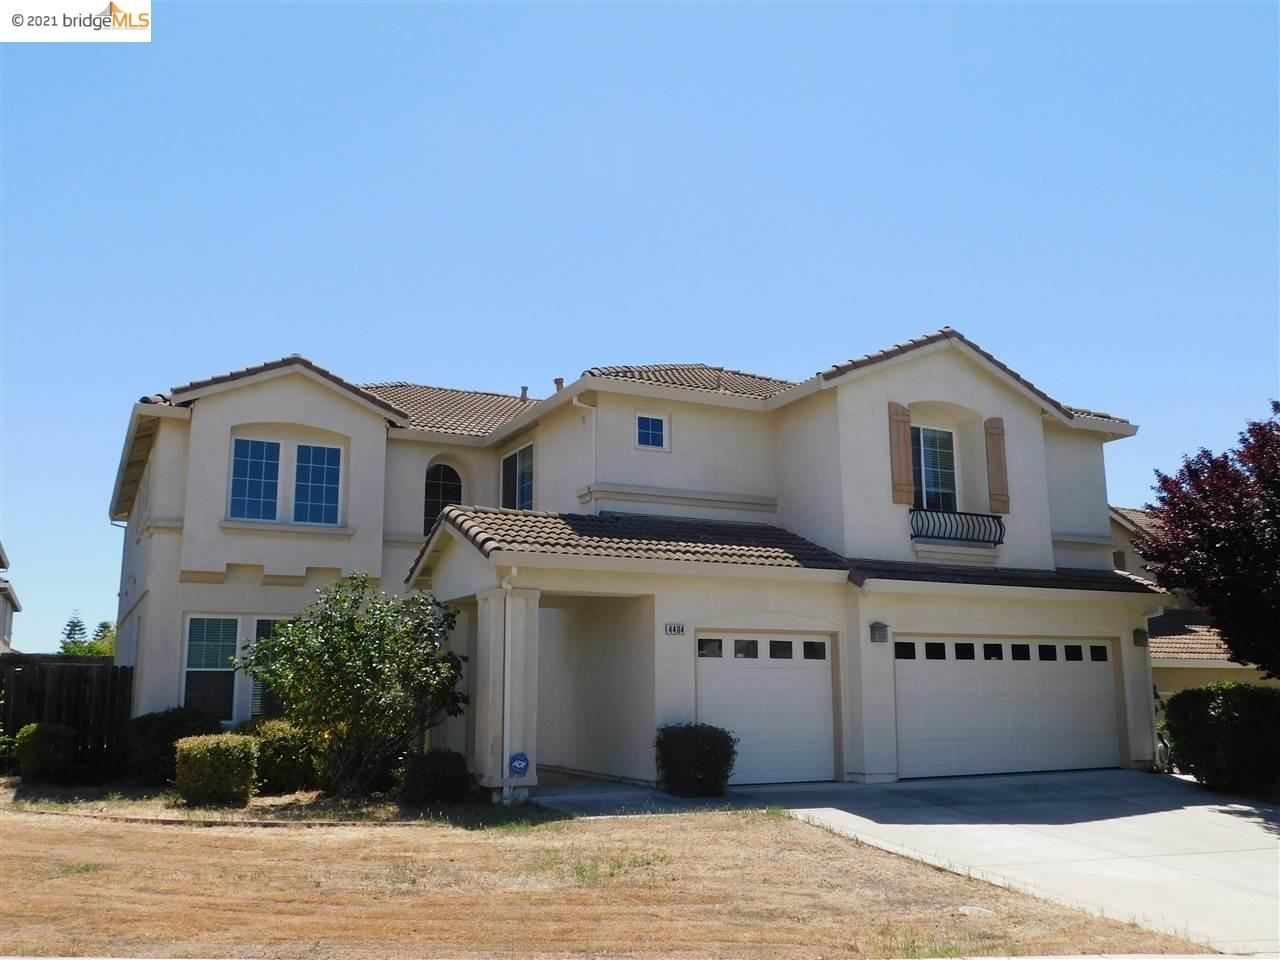 Photo of 4404 Rocky Point Dr, ANTIOCH, CA 94531 (MLS # 40948727)